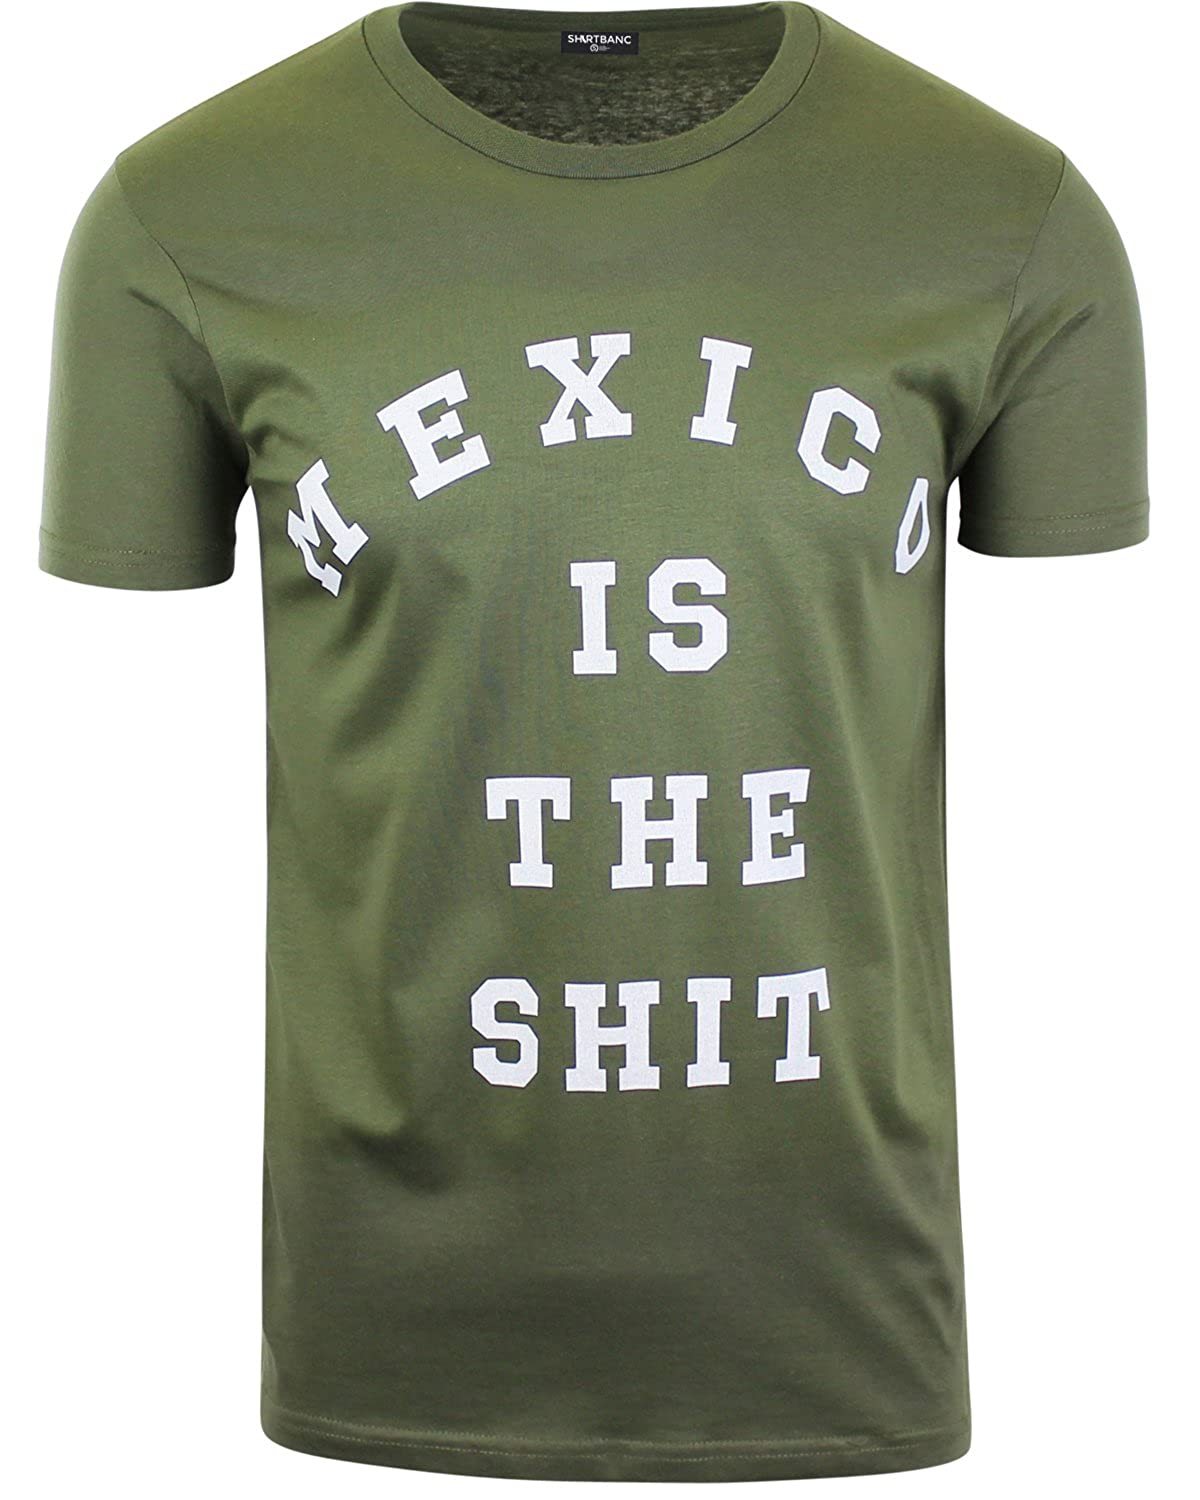 Amazon.com: Mexico is The S Mens T Shirts Mexican Pride Viva Mexico: Clothing